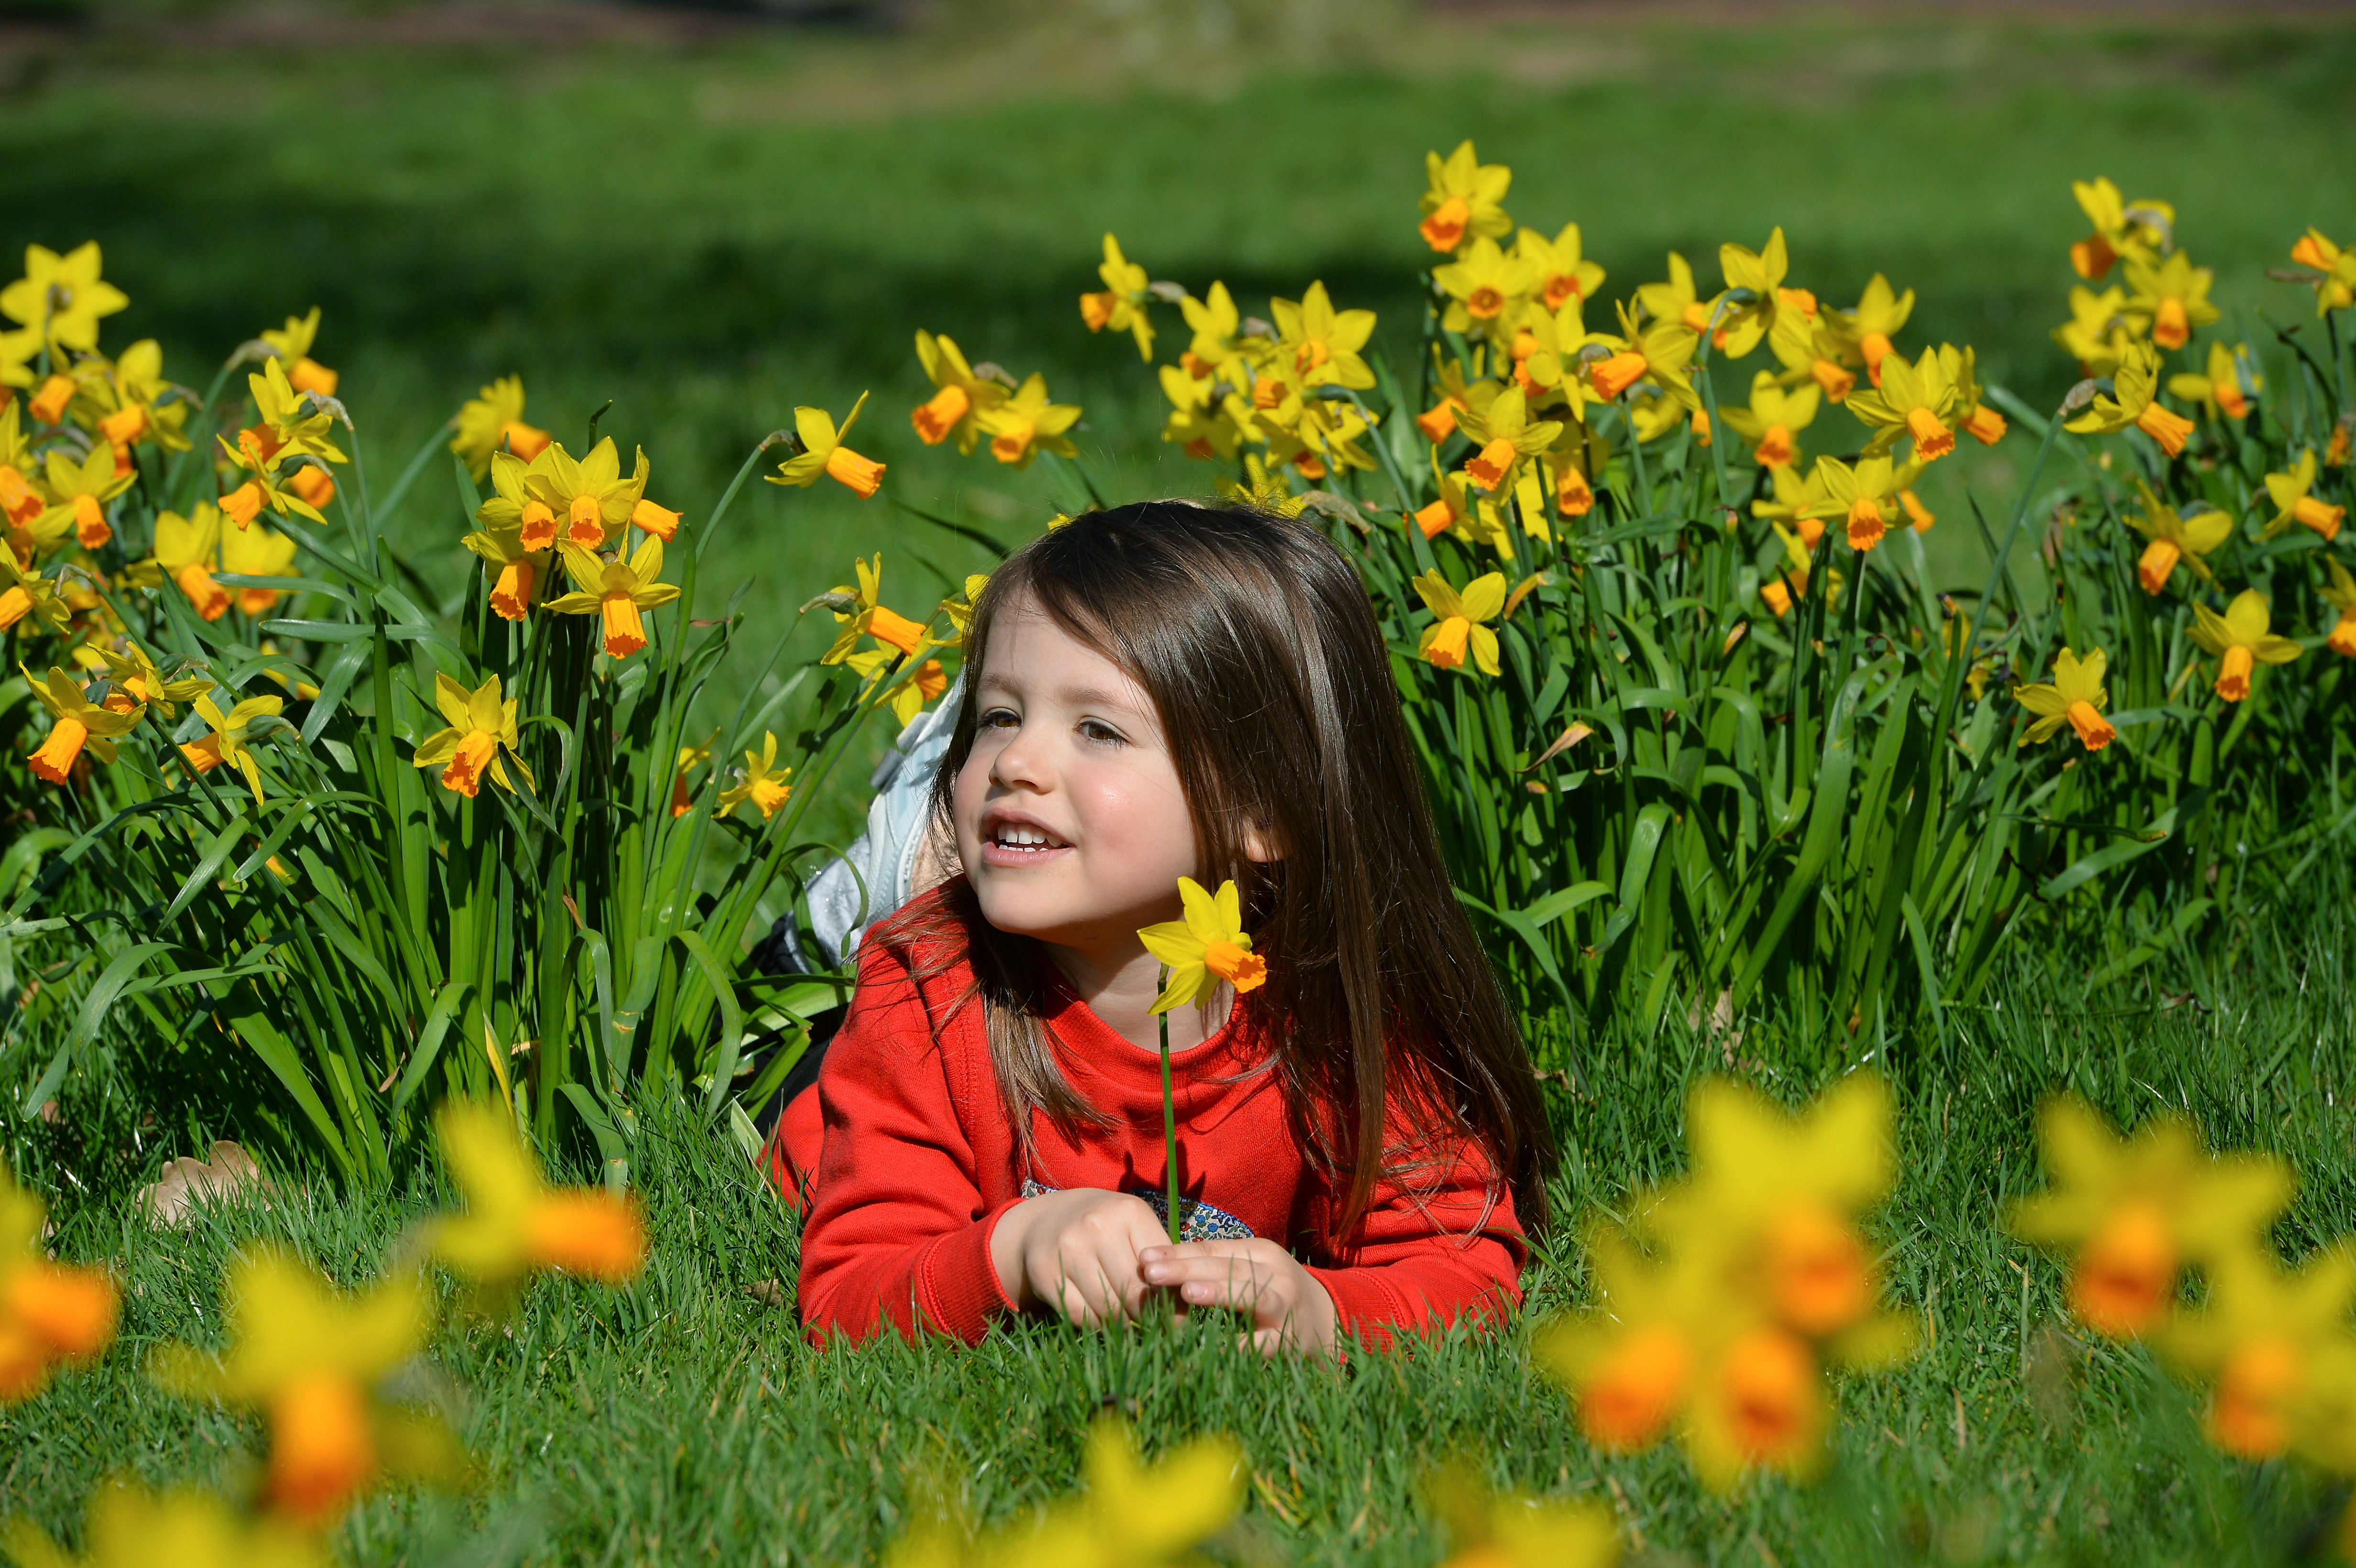 <p>Leicester, Leicestershire, UK 29th Mar 2021. UK Weather. Rowan Hannam, 3, enjoys the sunshine and Daffodils in Victoria Park in Leicester as some Coronavirus lockdown restrictions begin to lift in the UK. Alex Hannam</p>